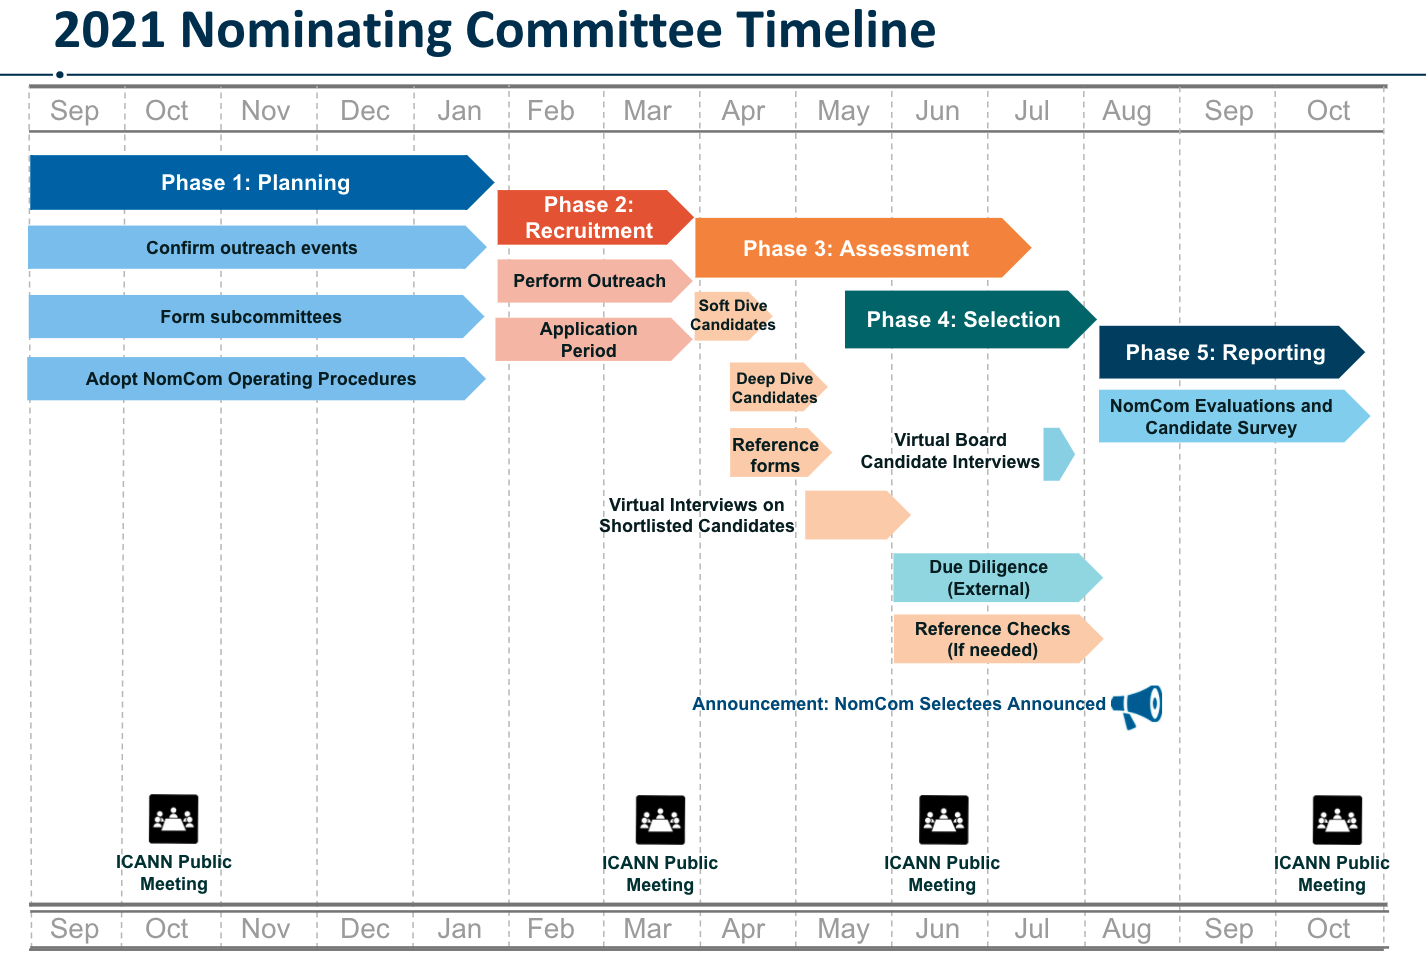 2021 Nominating Committee Timeline